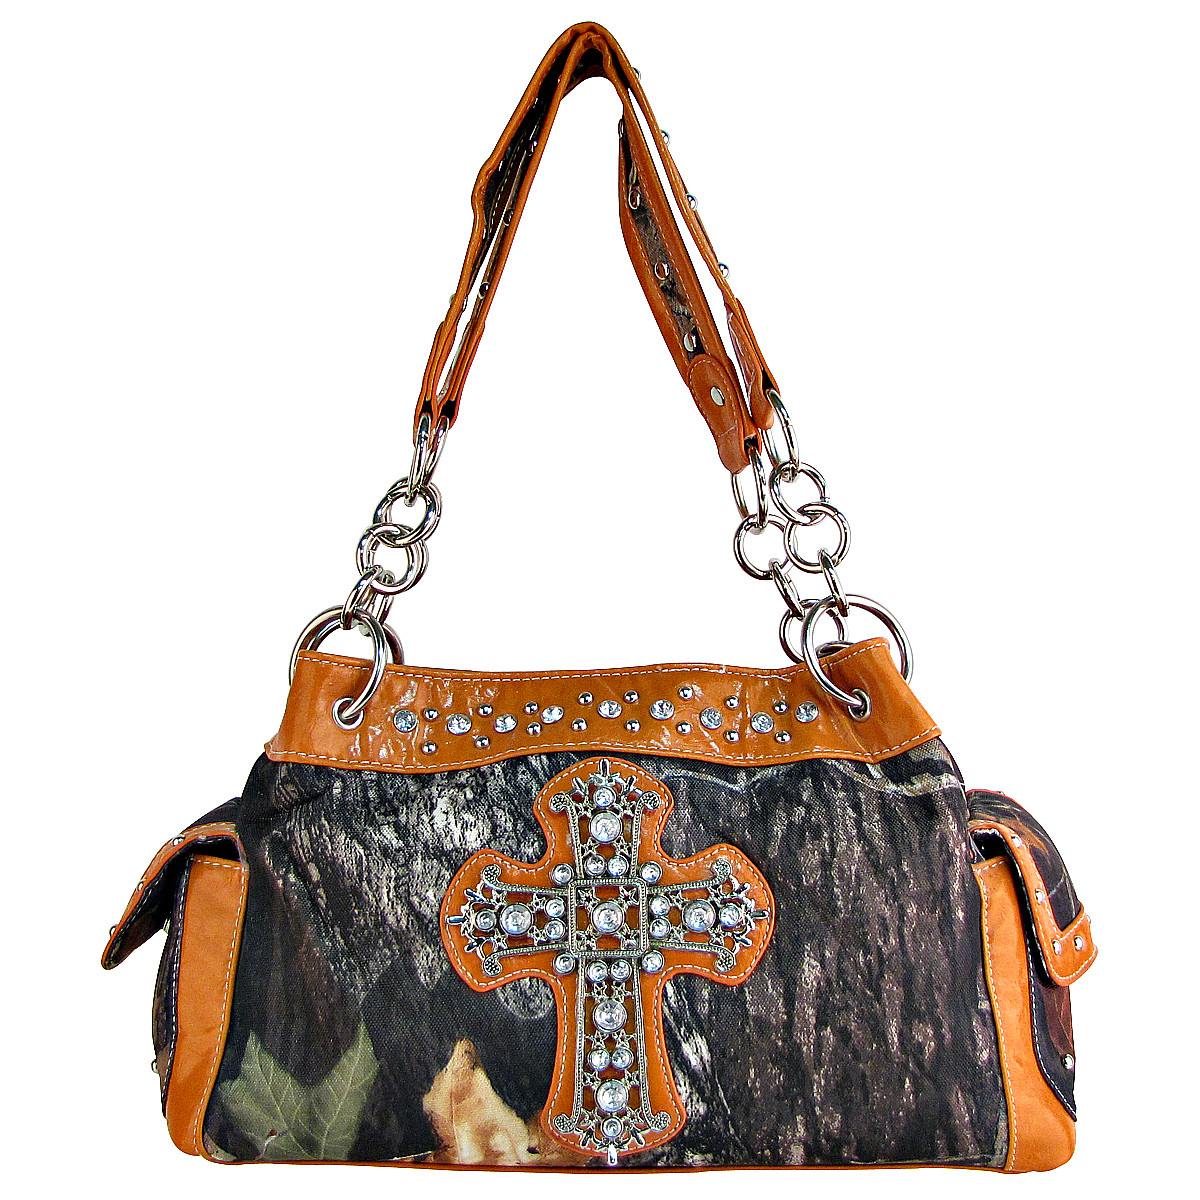 ORANGE RHINESTONE MOSSY CAMO LOOK CROSS SHOULDER HANDBAG HB1-C-321-2ORG